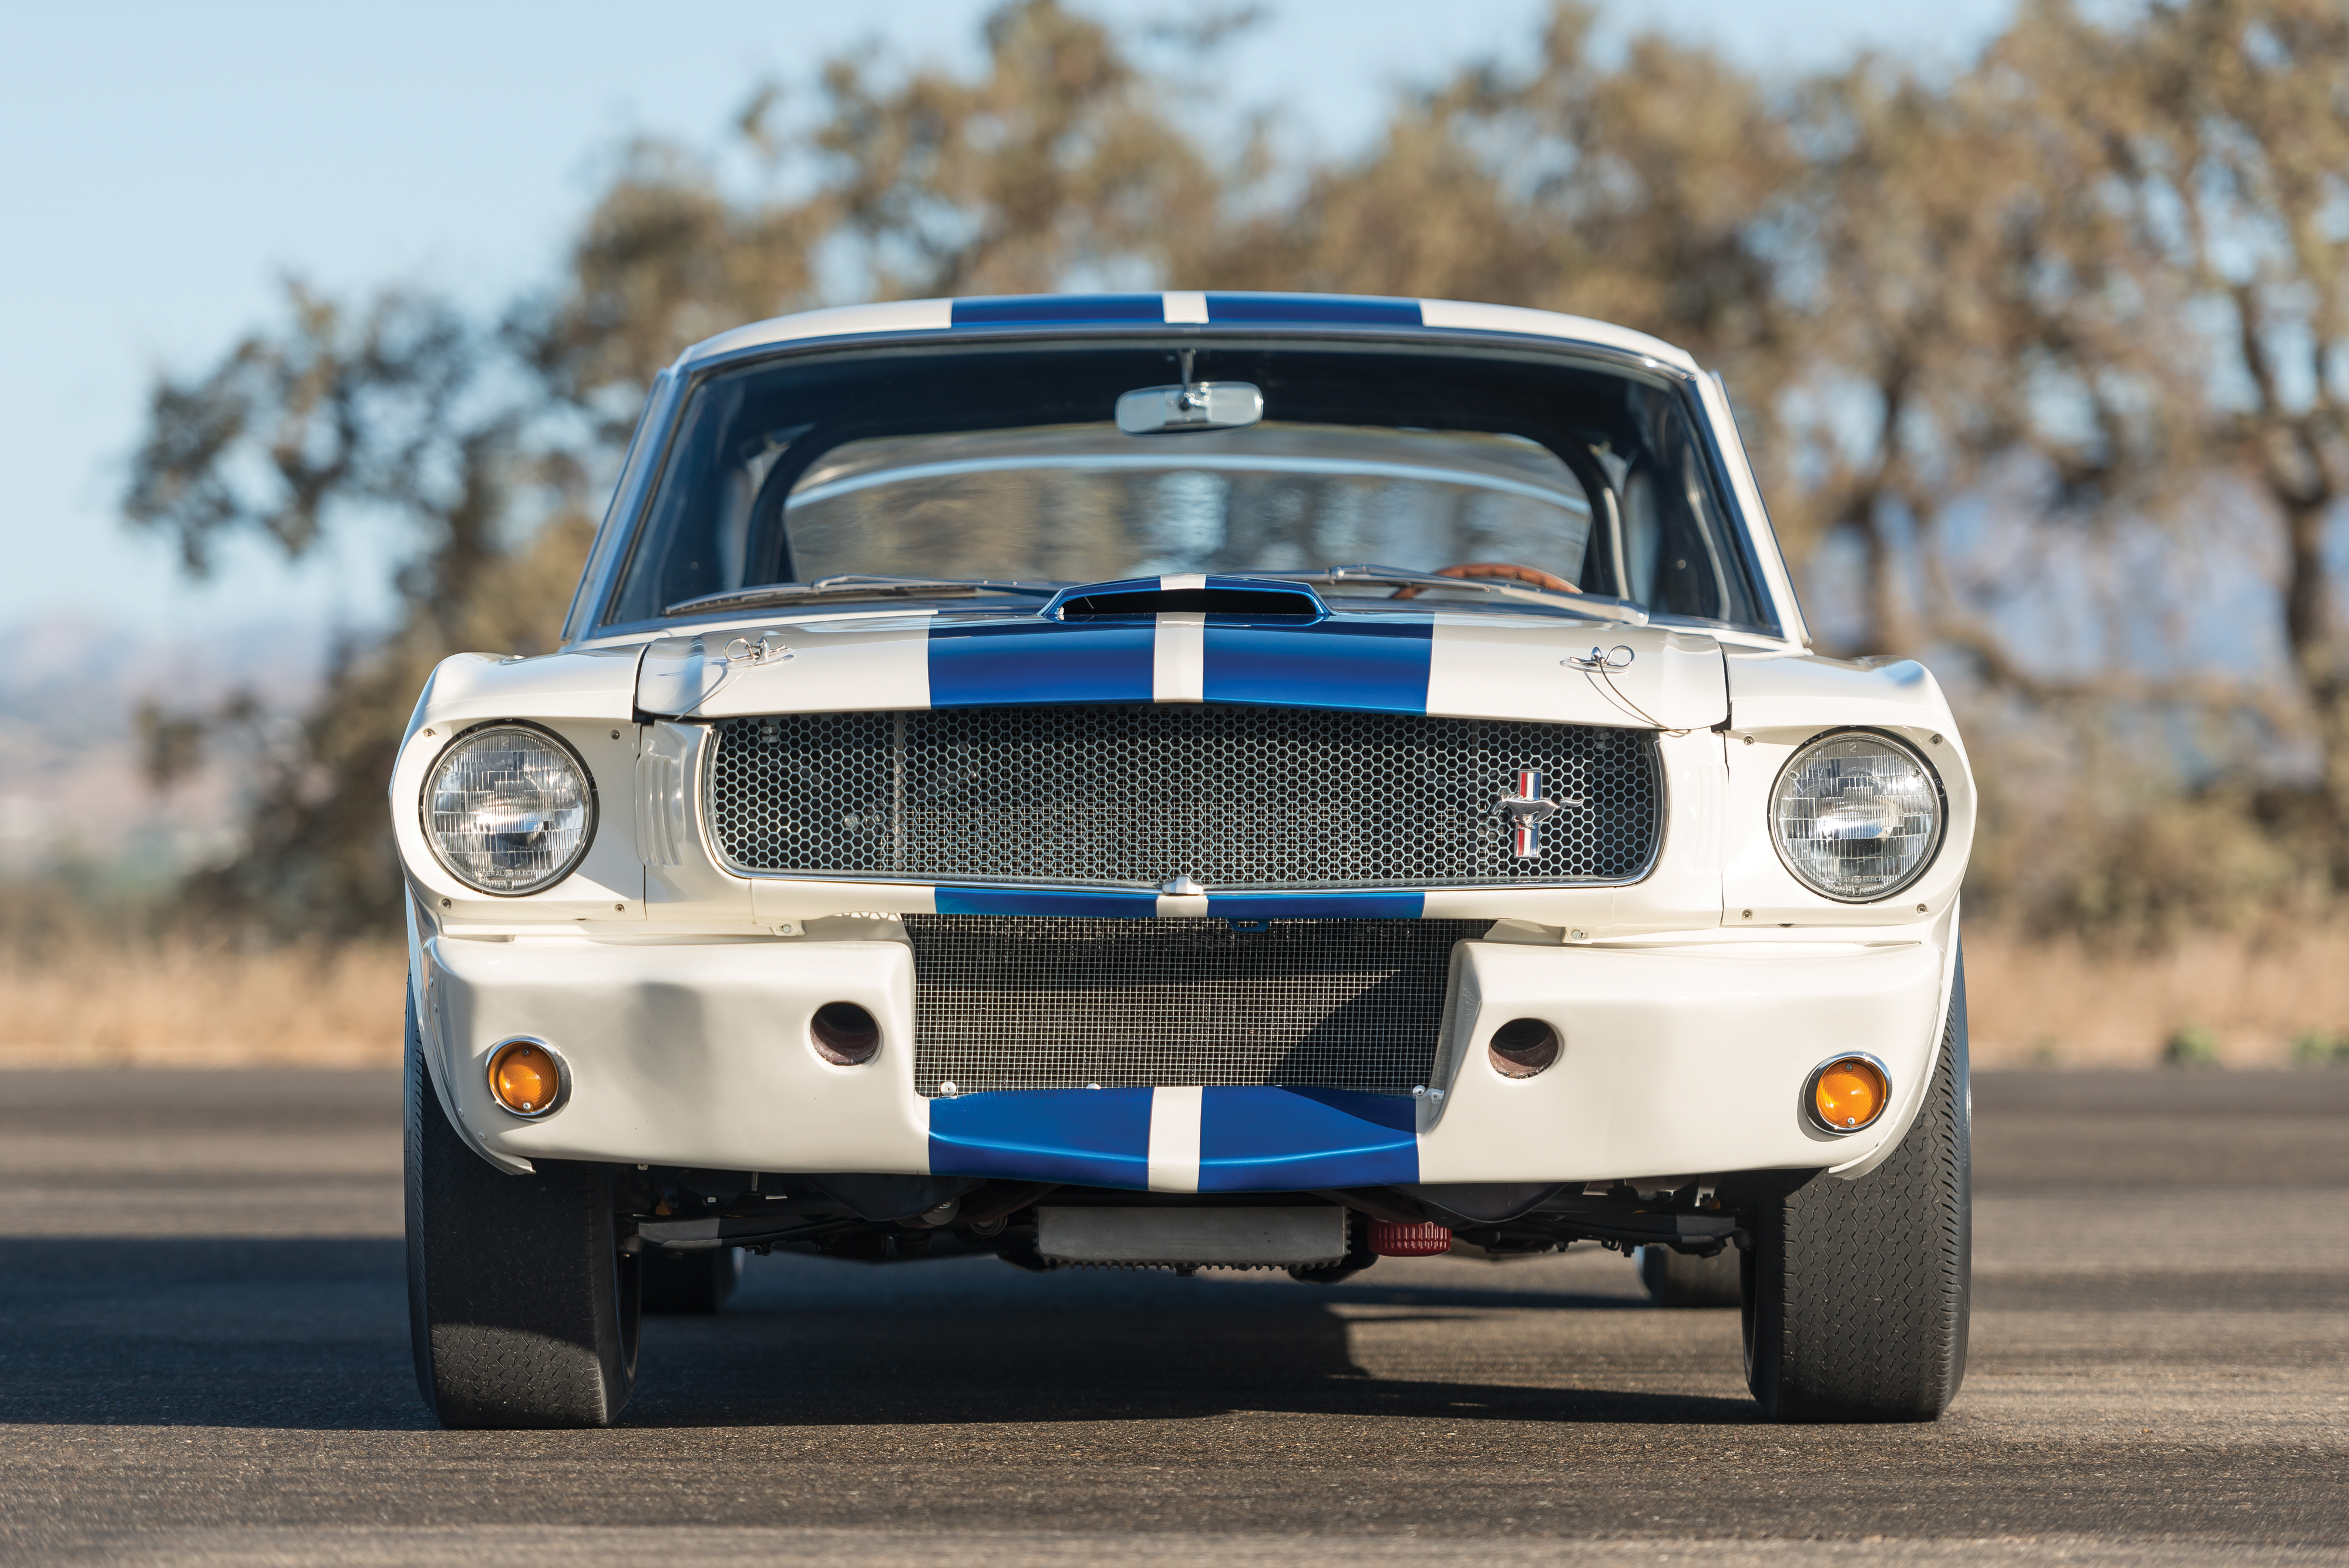 Ford Mustang Shelby 1965 Wallpaper